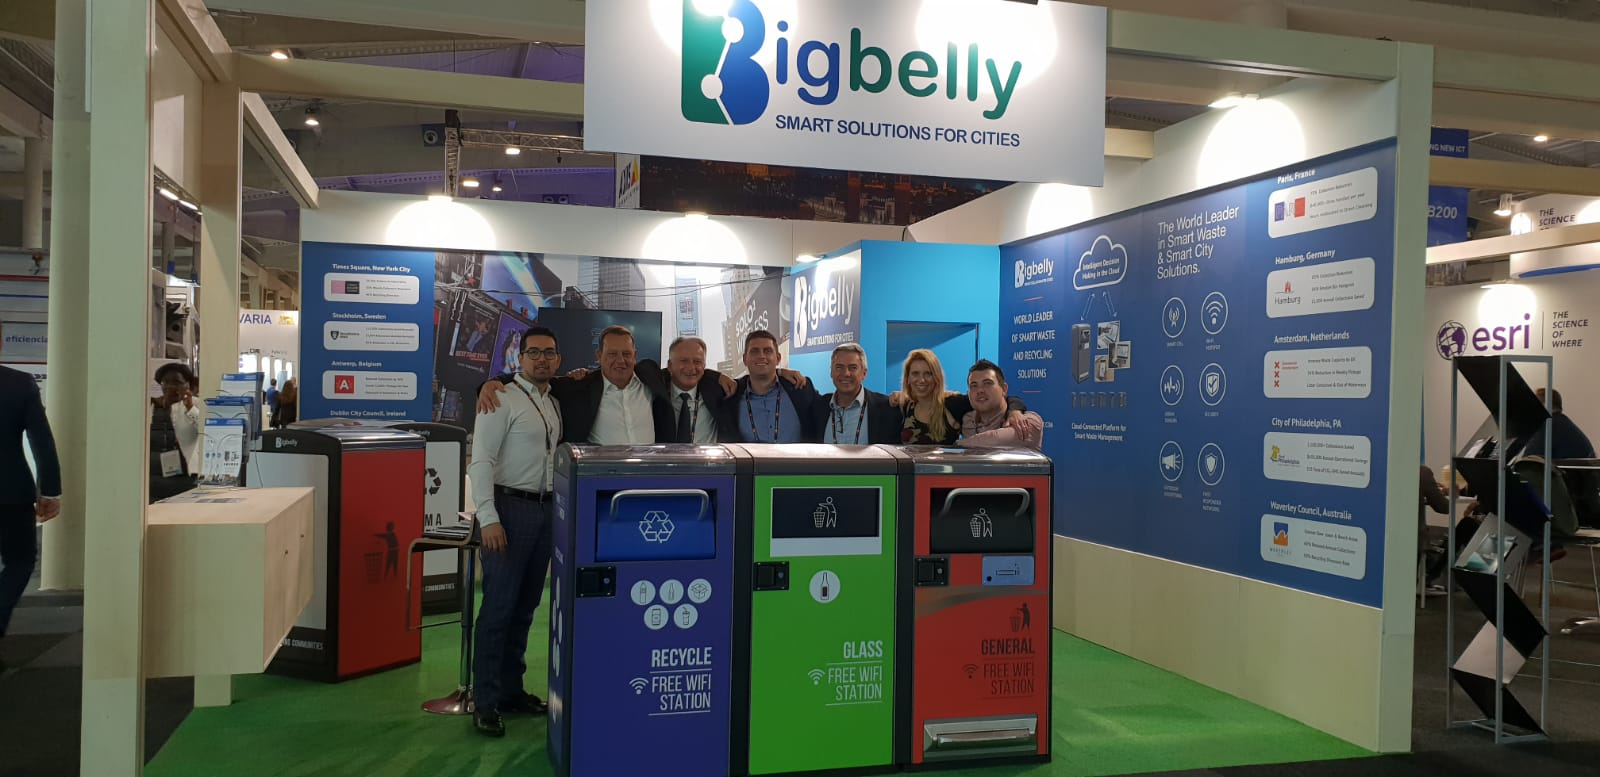 Bigbelly Future Street at Smart City Expo and World Congress 2018